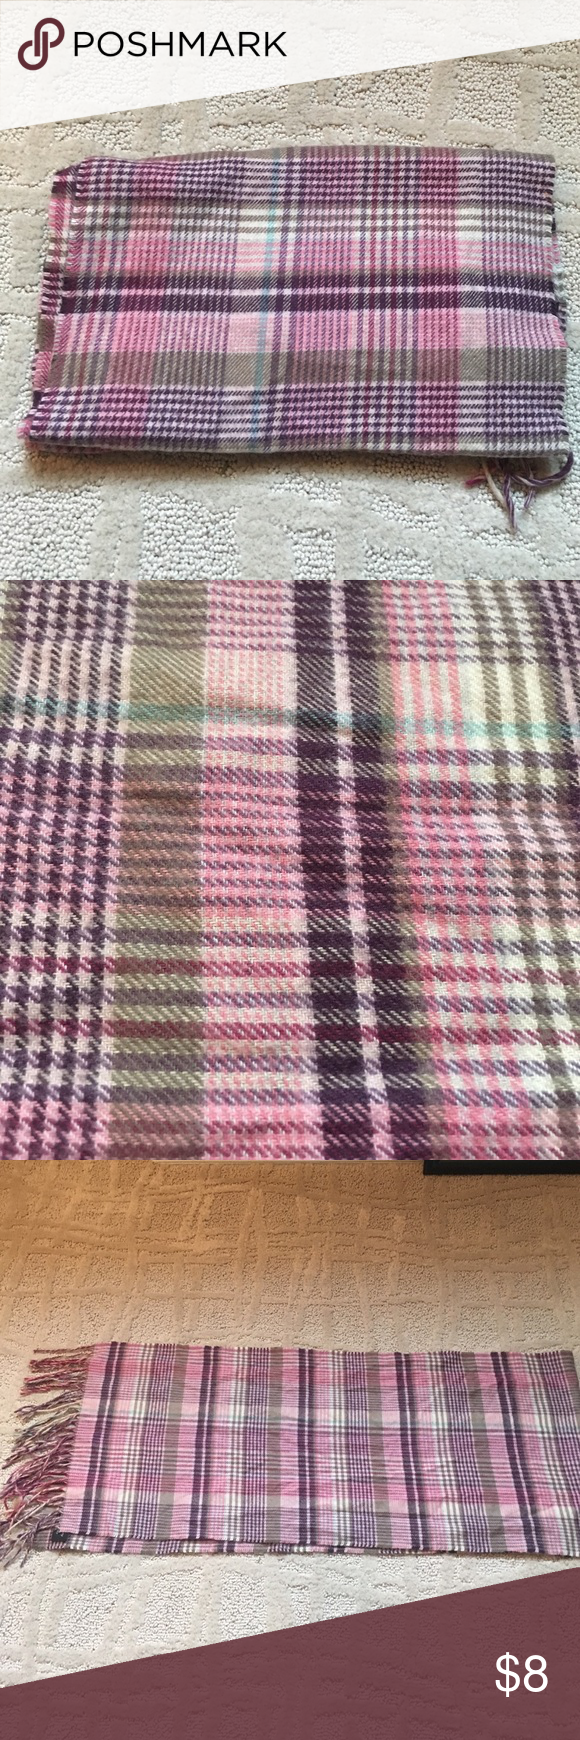 Winter plaid scarf EUC condition. No flaws. Warm and cute and fashionable. Has shades of pink and burgundy, also beige and blue. Accessories Scarves & Wraps